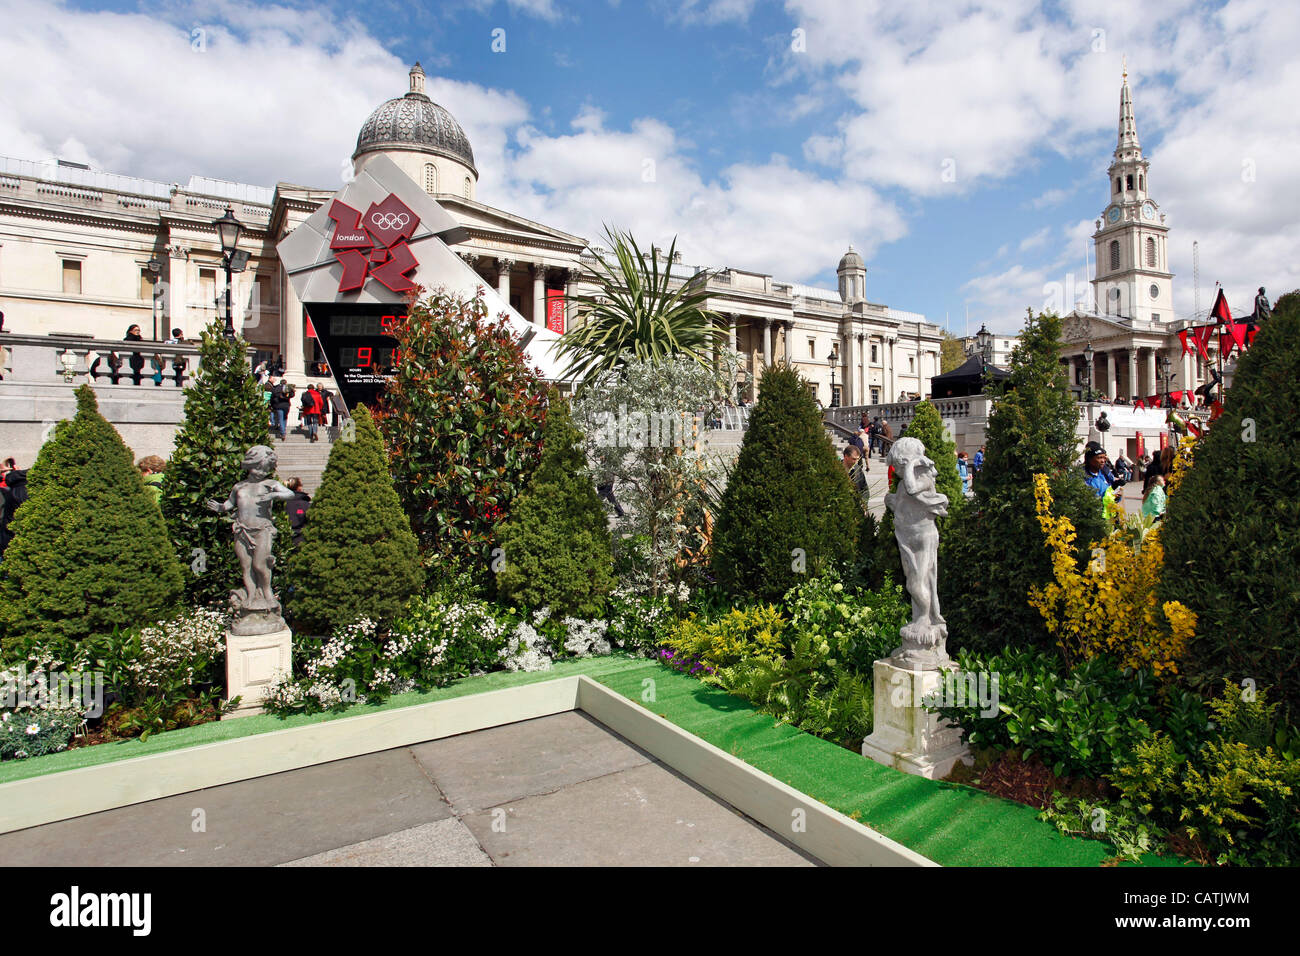 London, UK. Saturday 21st April 2012. Trafalgar Square becomes English Garden for St. George's Day, London Stock Photo